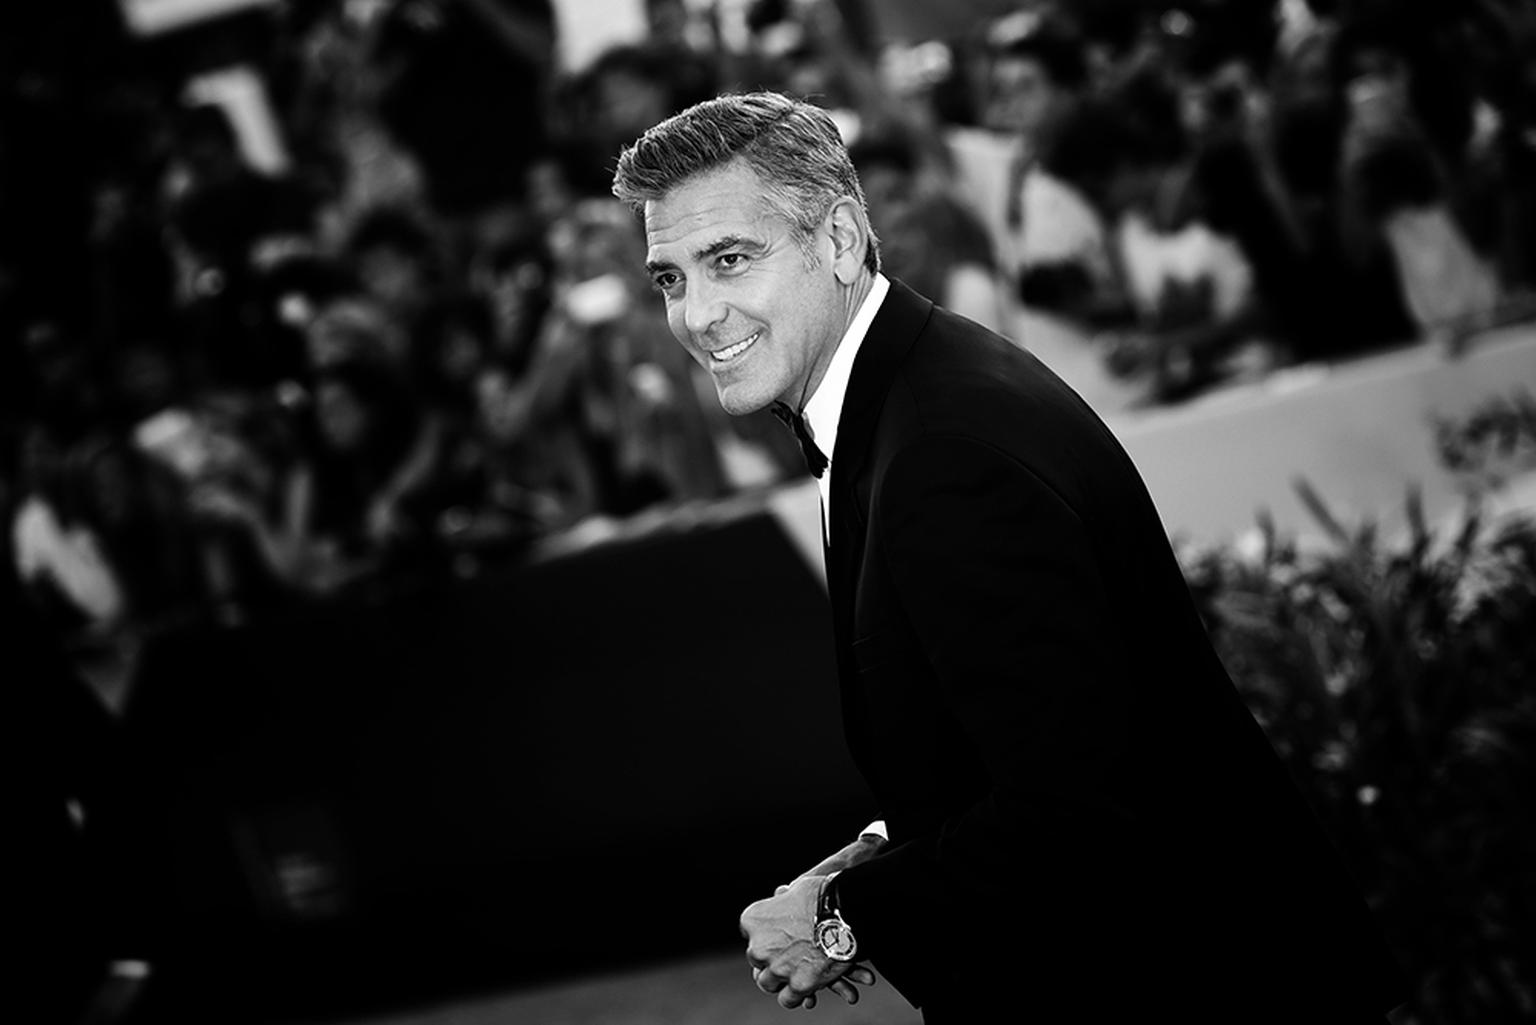 Omega ambassador George Clooney, pictured wearing an Omega De Ville Hour Vision watch at the Venice Film Festival 2013, married Amal Alamuddin this weekend in Venice wearing an Omega De Ville Trésor watch.